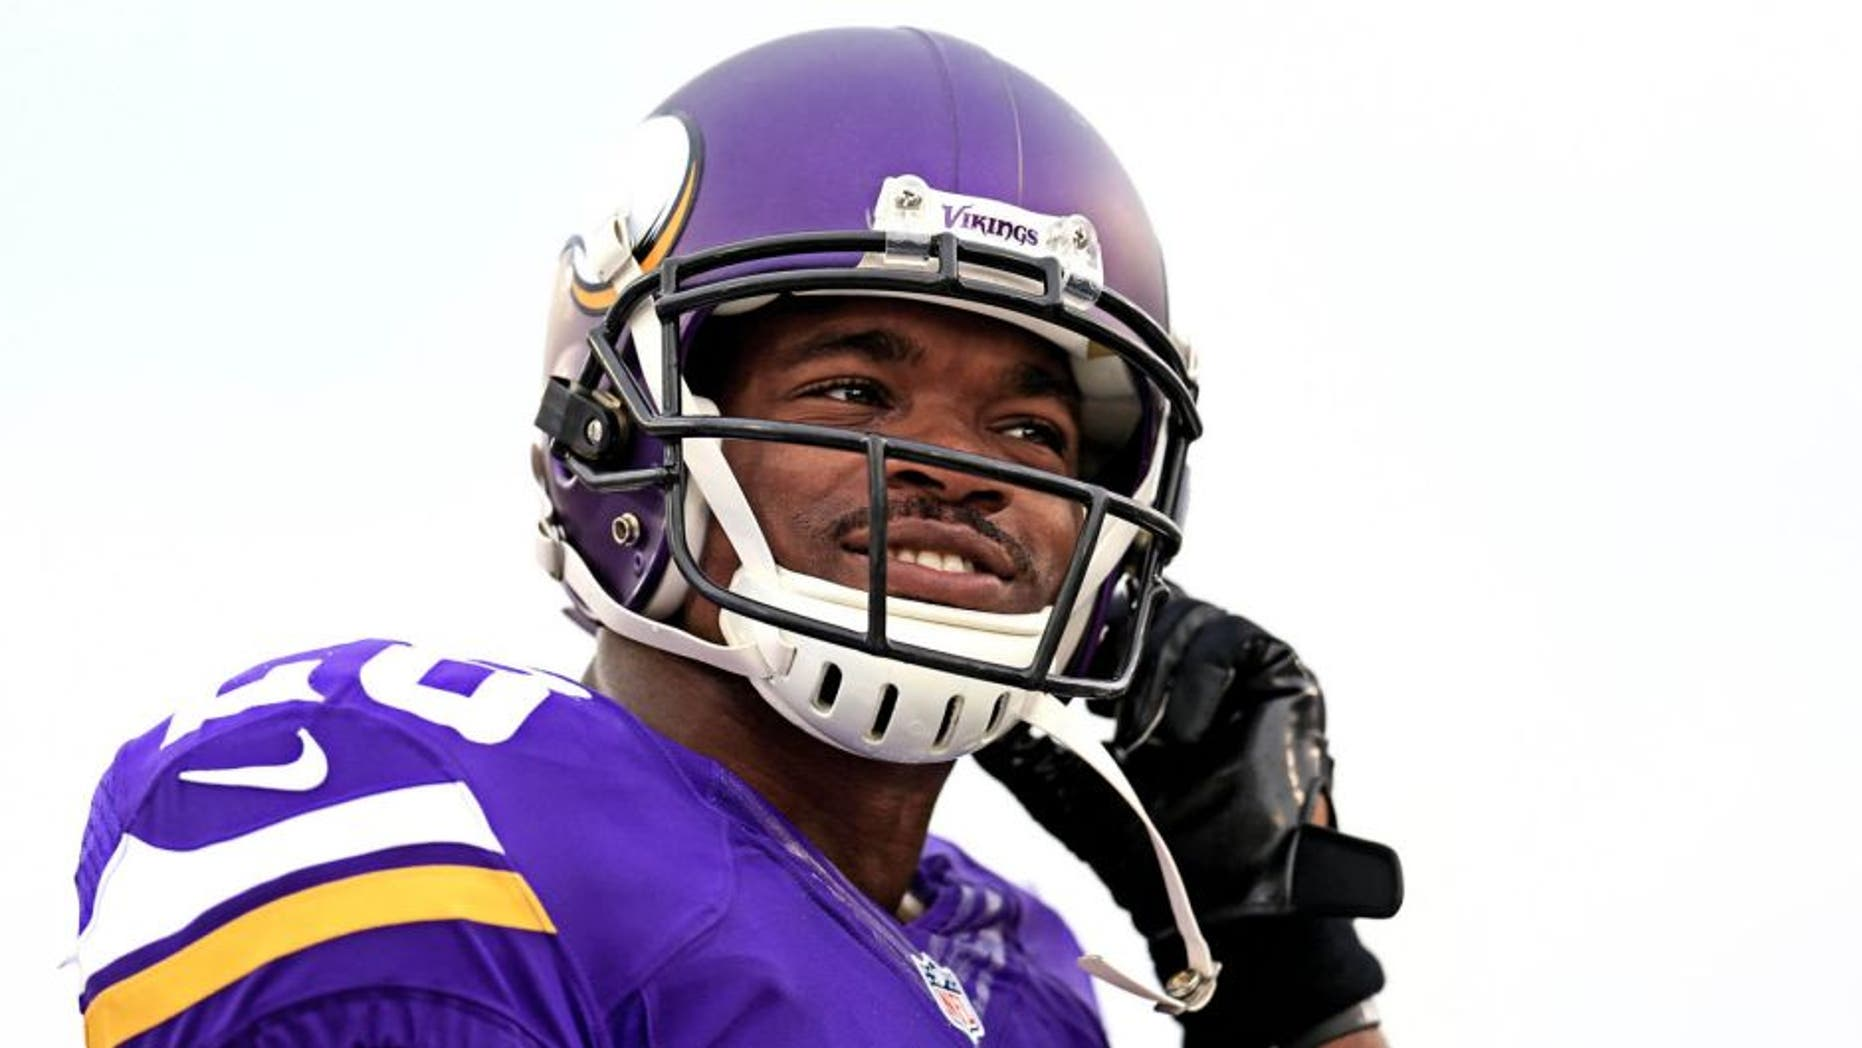 Minnesota Vikings running back Adrian Peterson looks on prior to the preseason game against the Pittsburgh Steelers at Tom Benson Hall of Fame Stadium on Aug. 9, 2015.